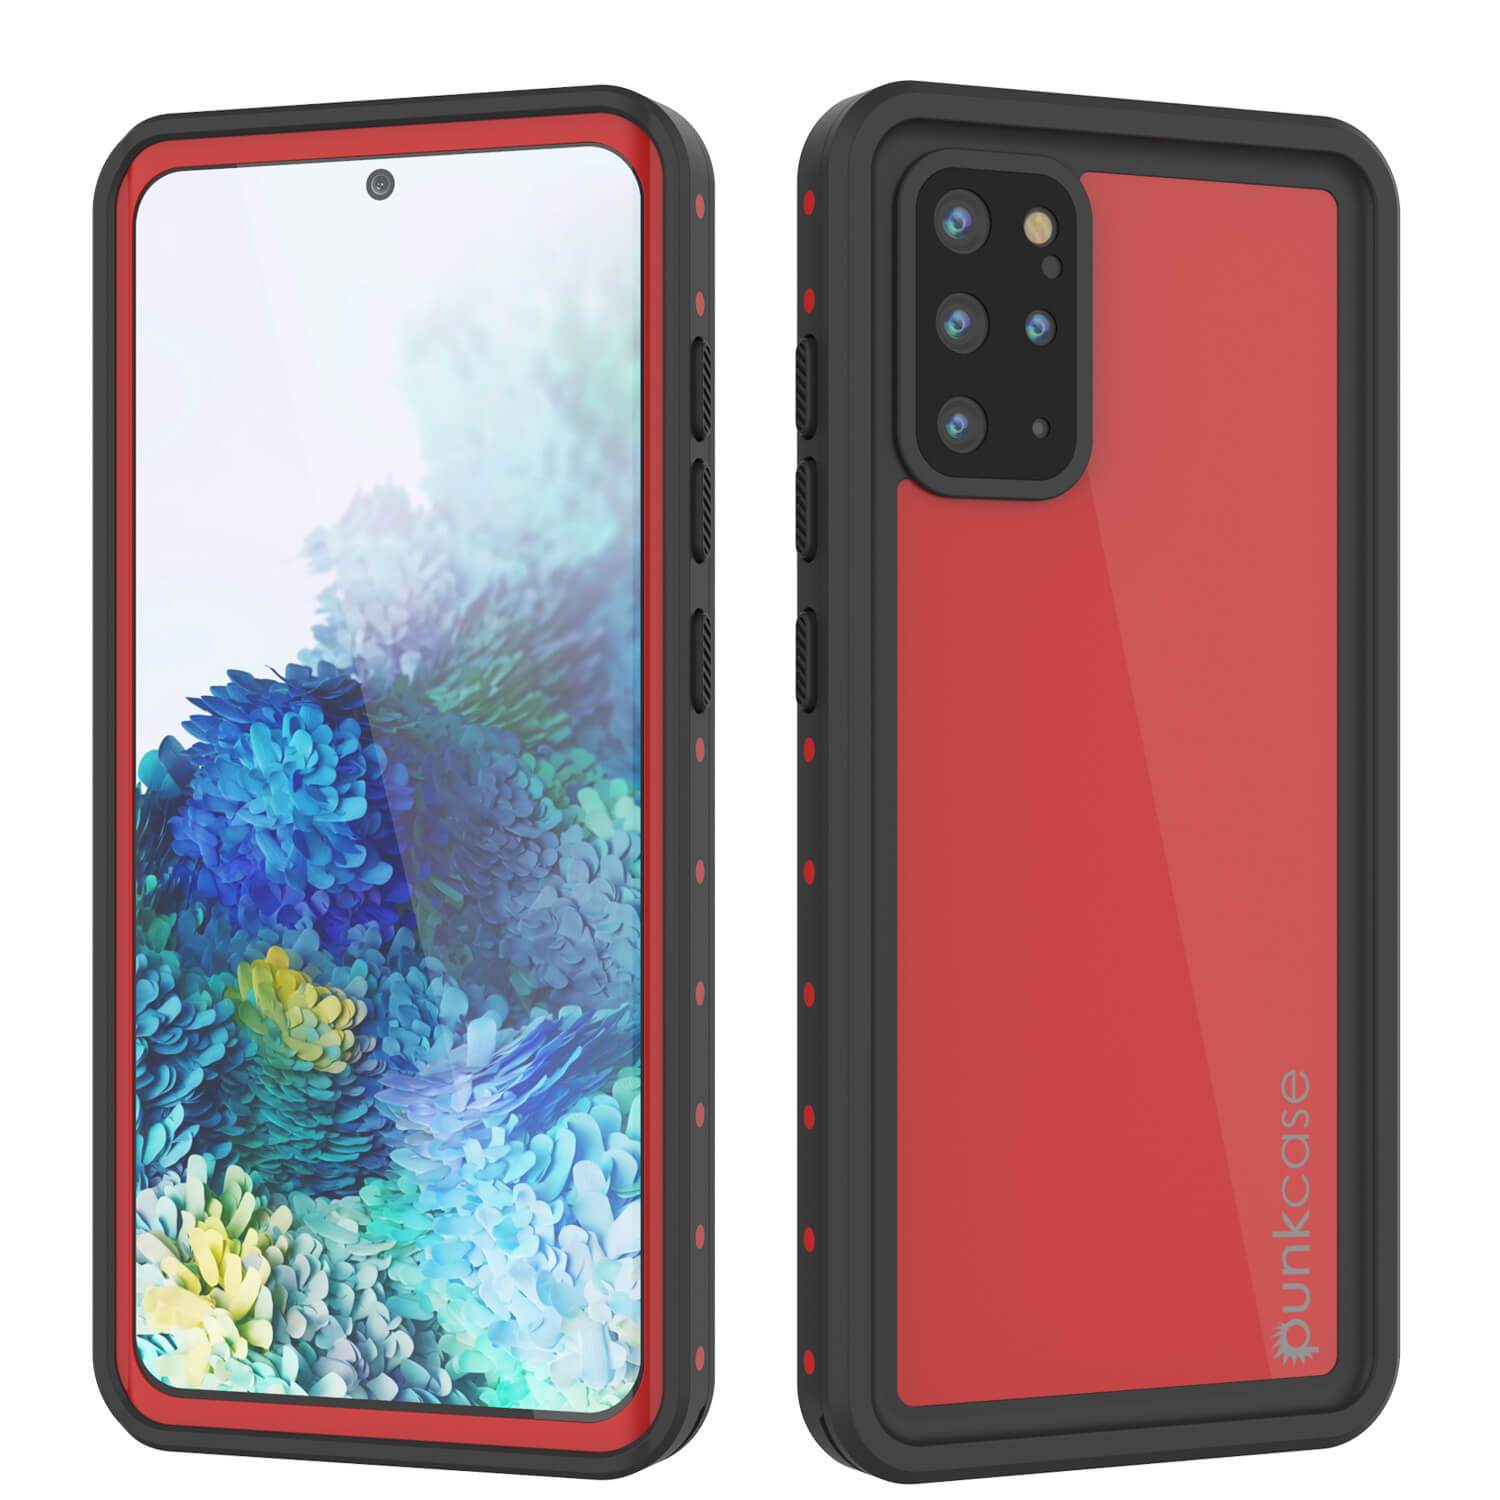 Galaxy S20+ Plus Waterproof Case PunkCase StudStar Red Thin 6.6ft Underwater IP68 Shock/Snow Proof